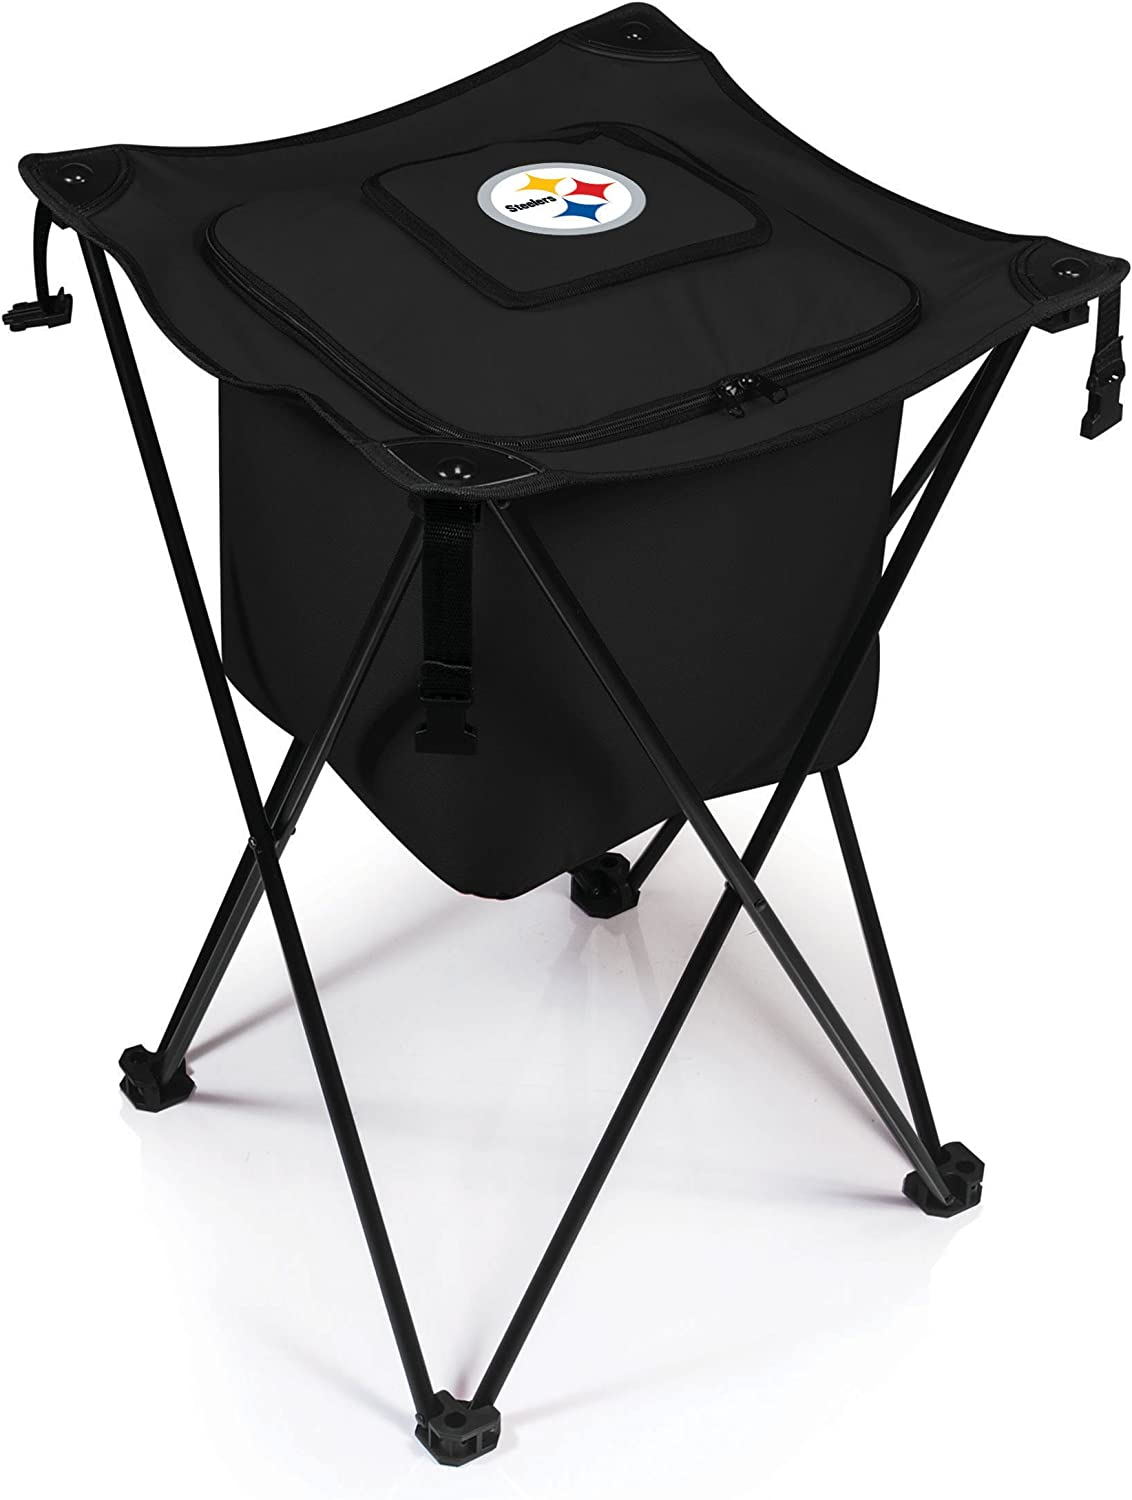 NFL Sidekick Insulated Portable Cooler with Integrated Legs 713vrIzCptL